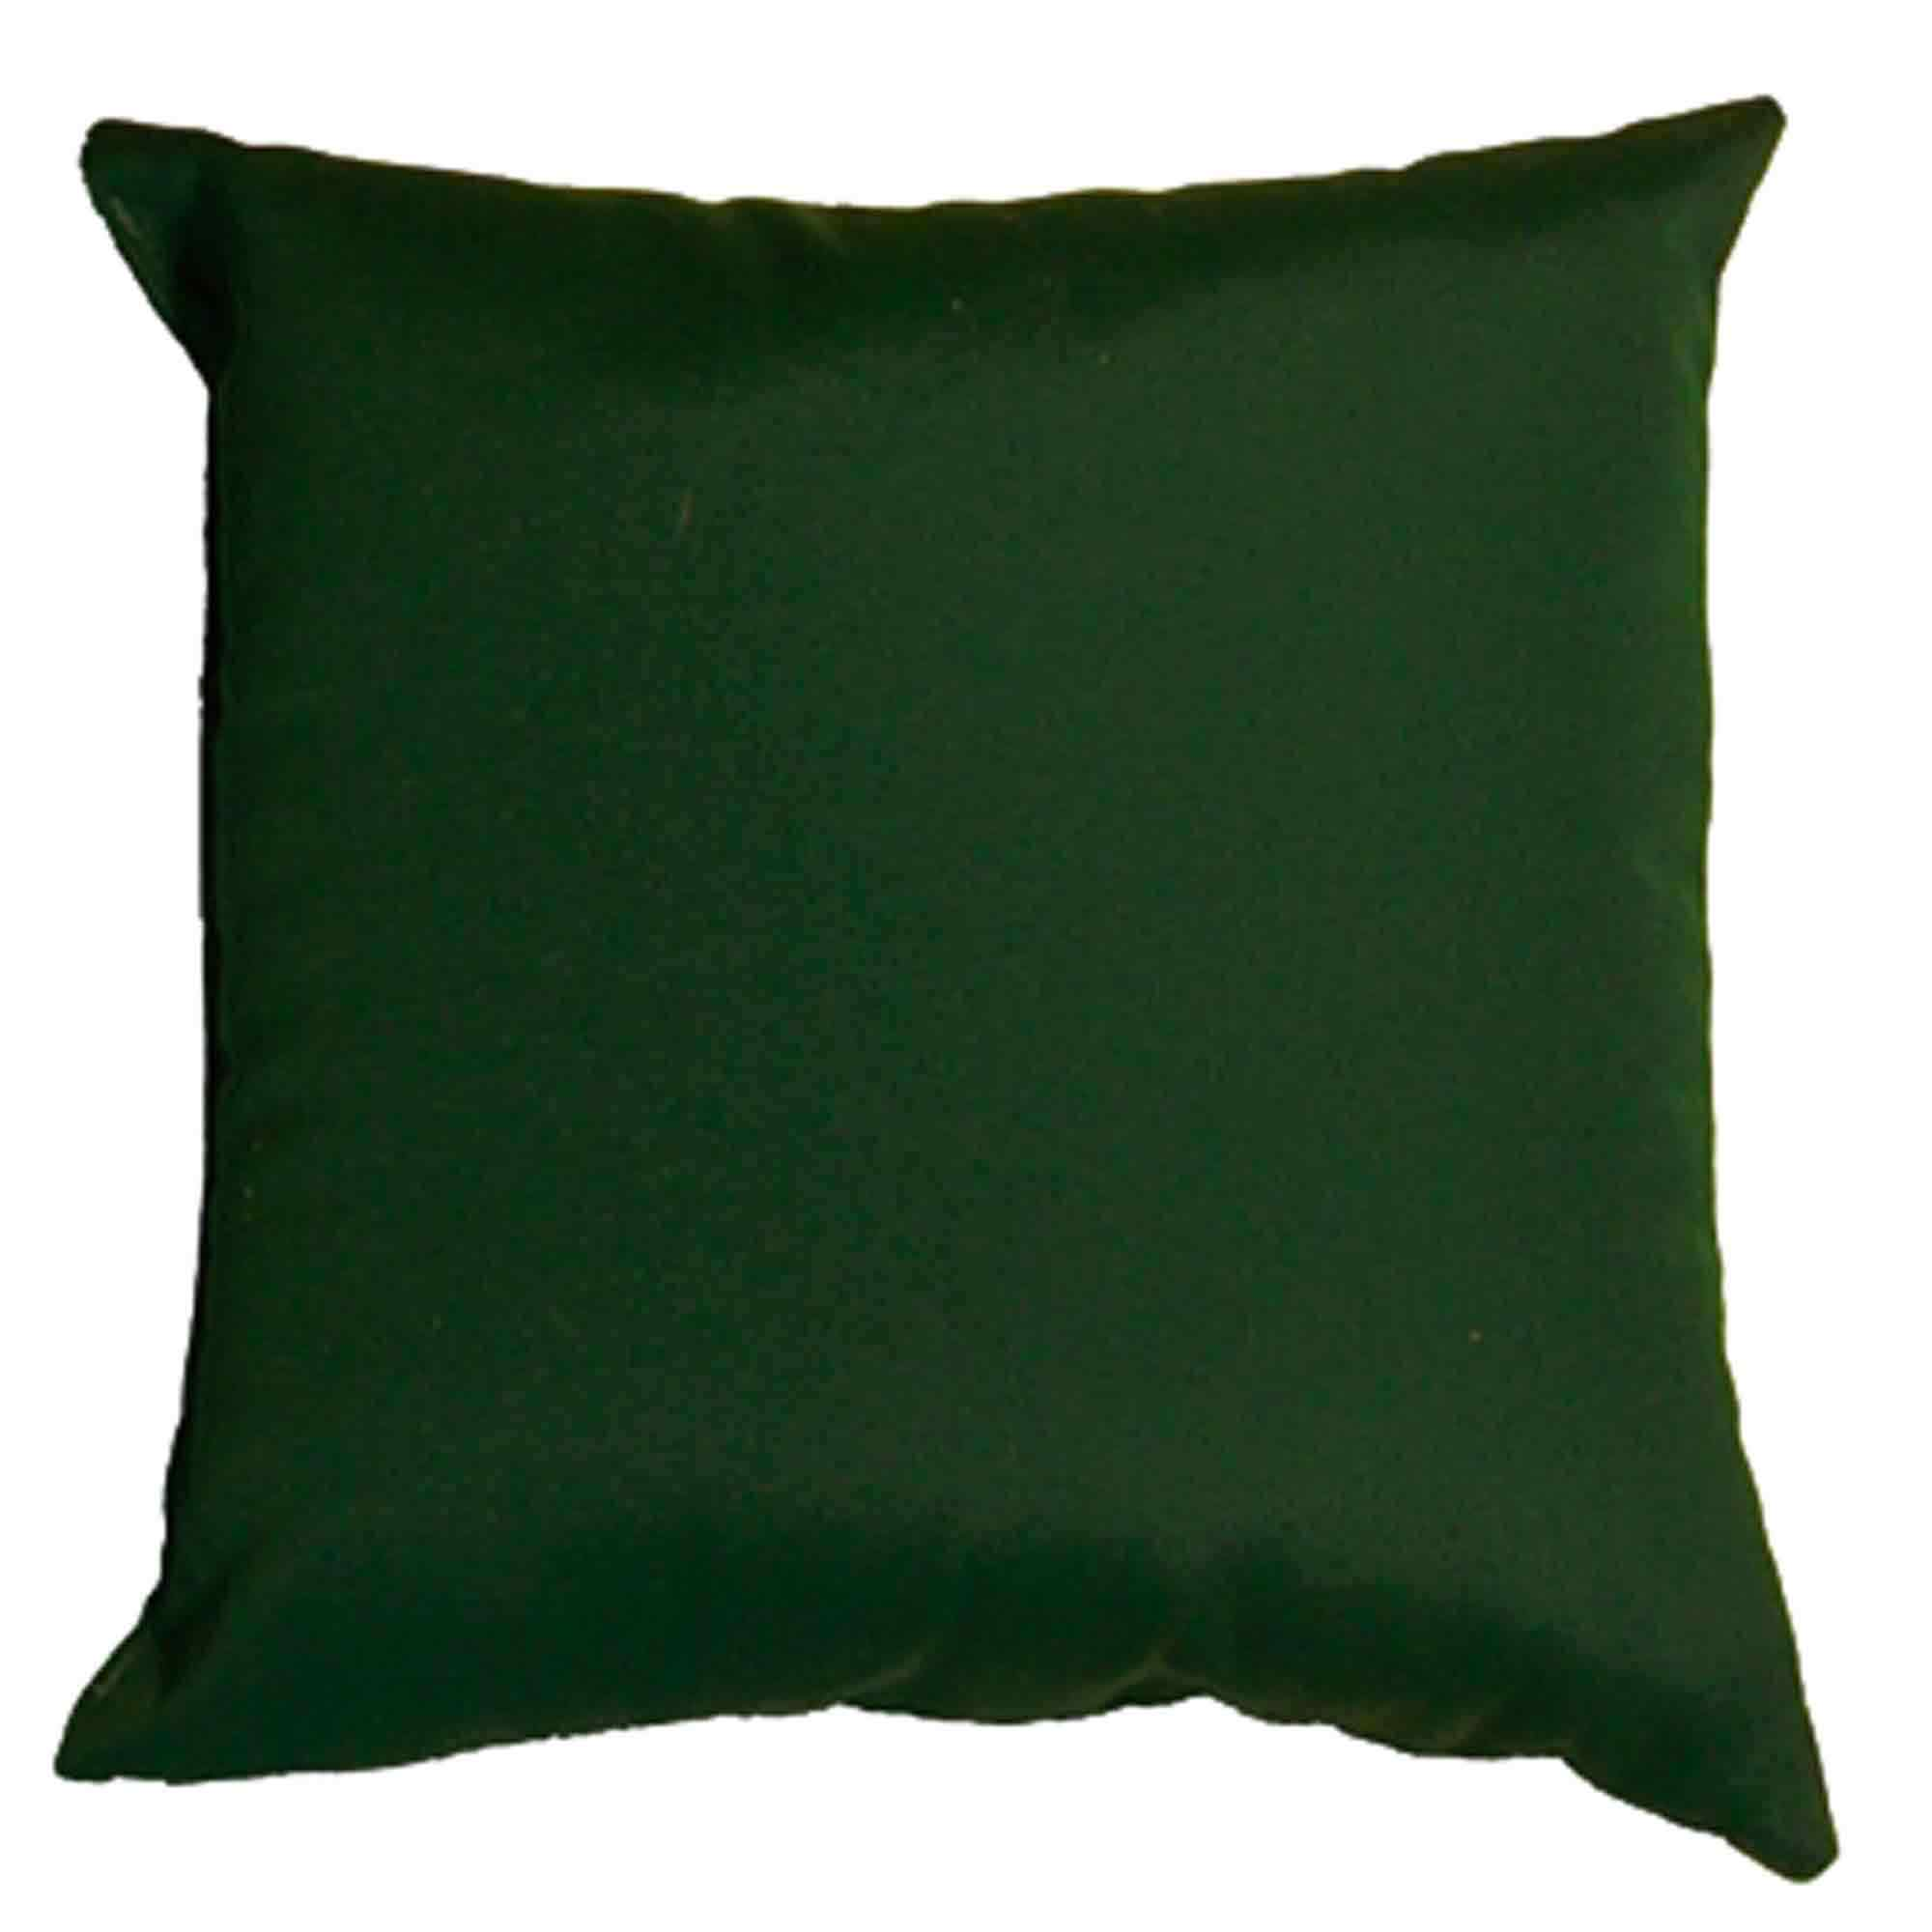 Shop Forest Green Sunbrella Outdoor Throw Pillow 16 In X 16 In Essentials By Dfo Pillows Outdoors Dfohome Com